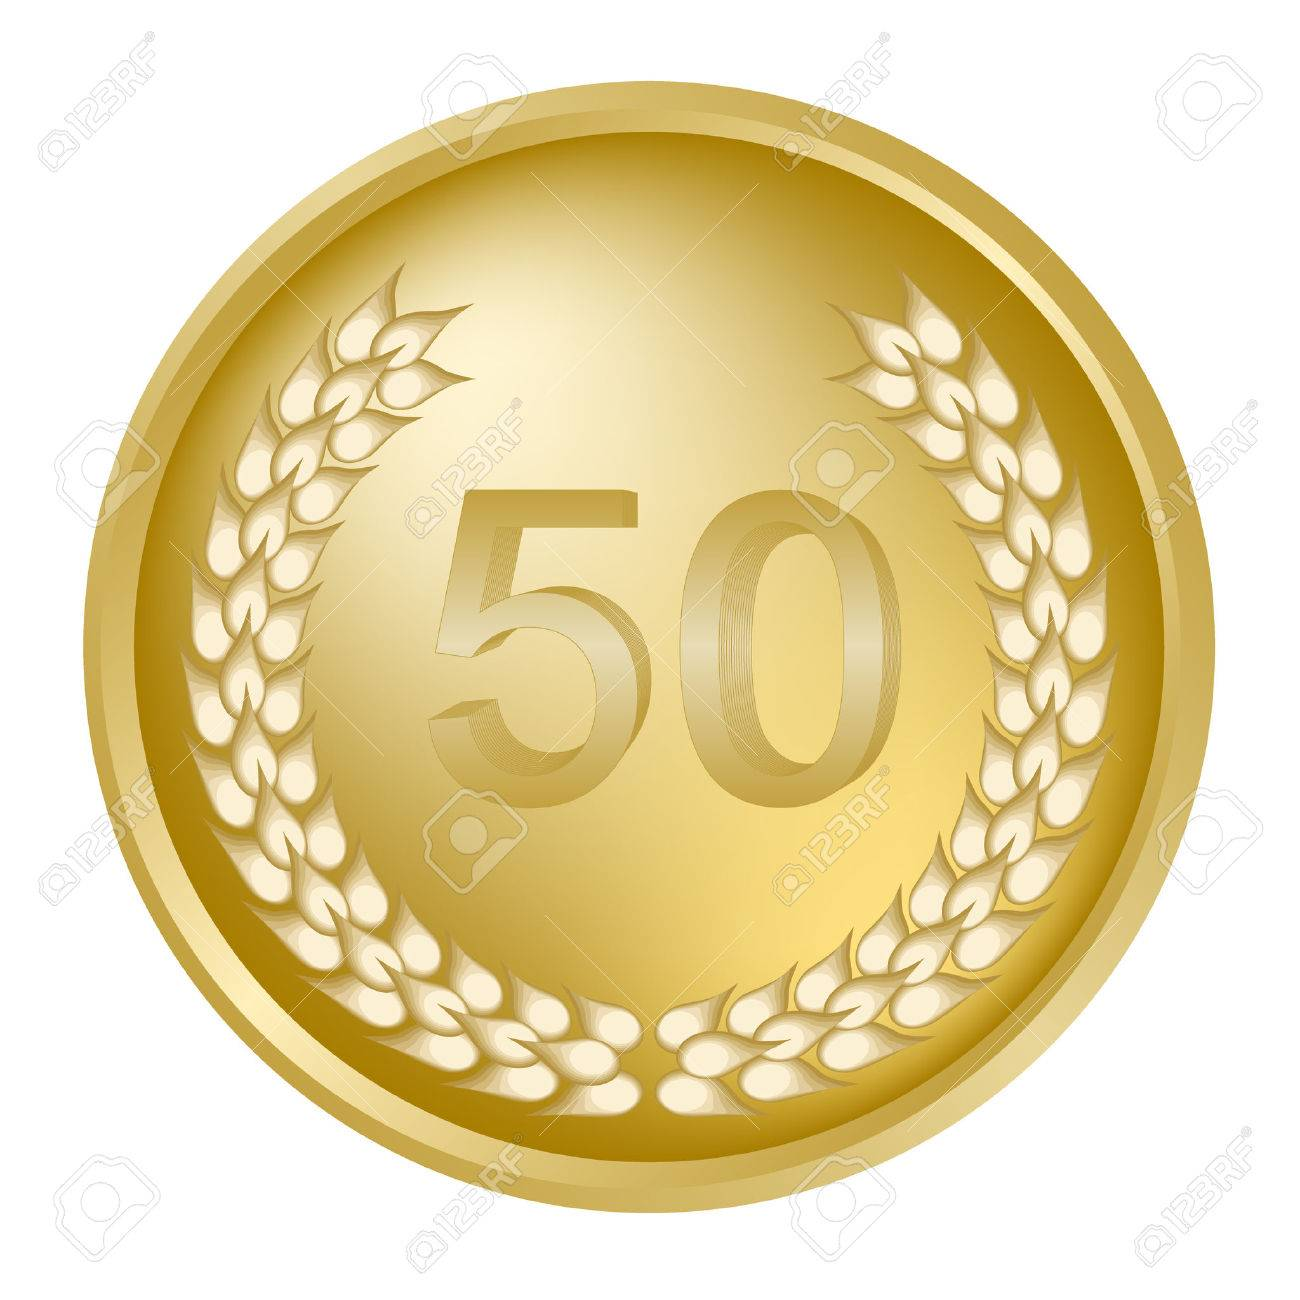 50th annivesary medallion and gold wreath Stock Vector - 3654001